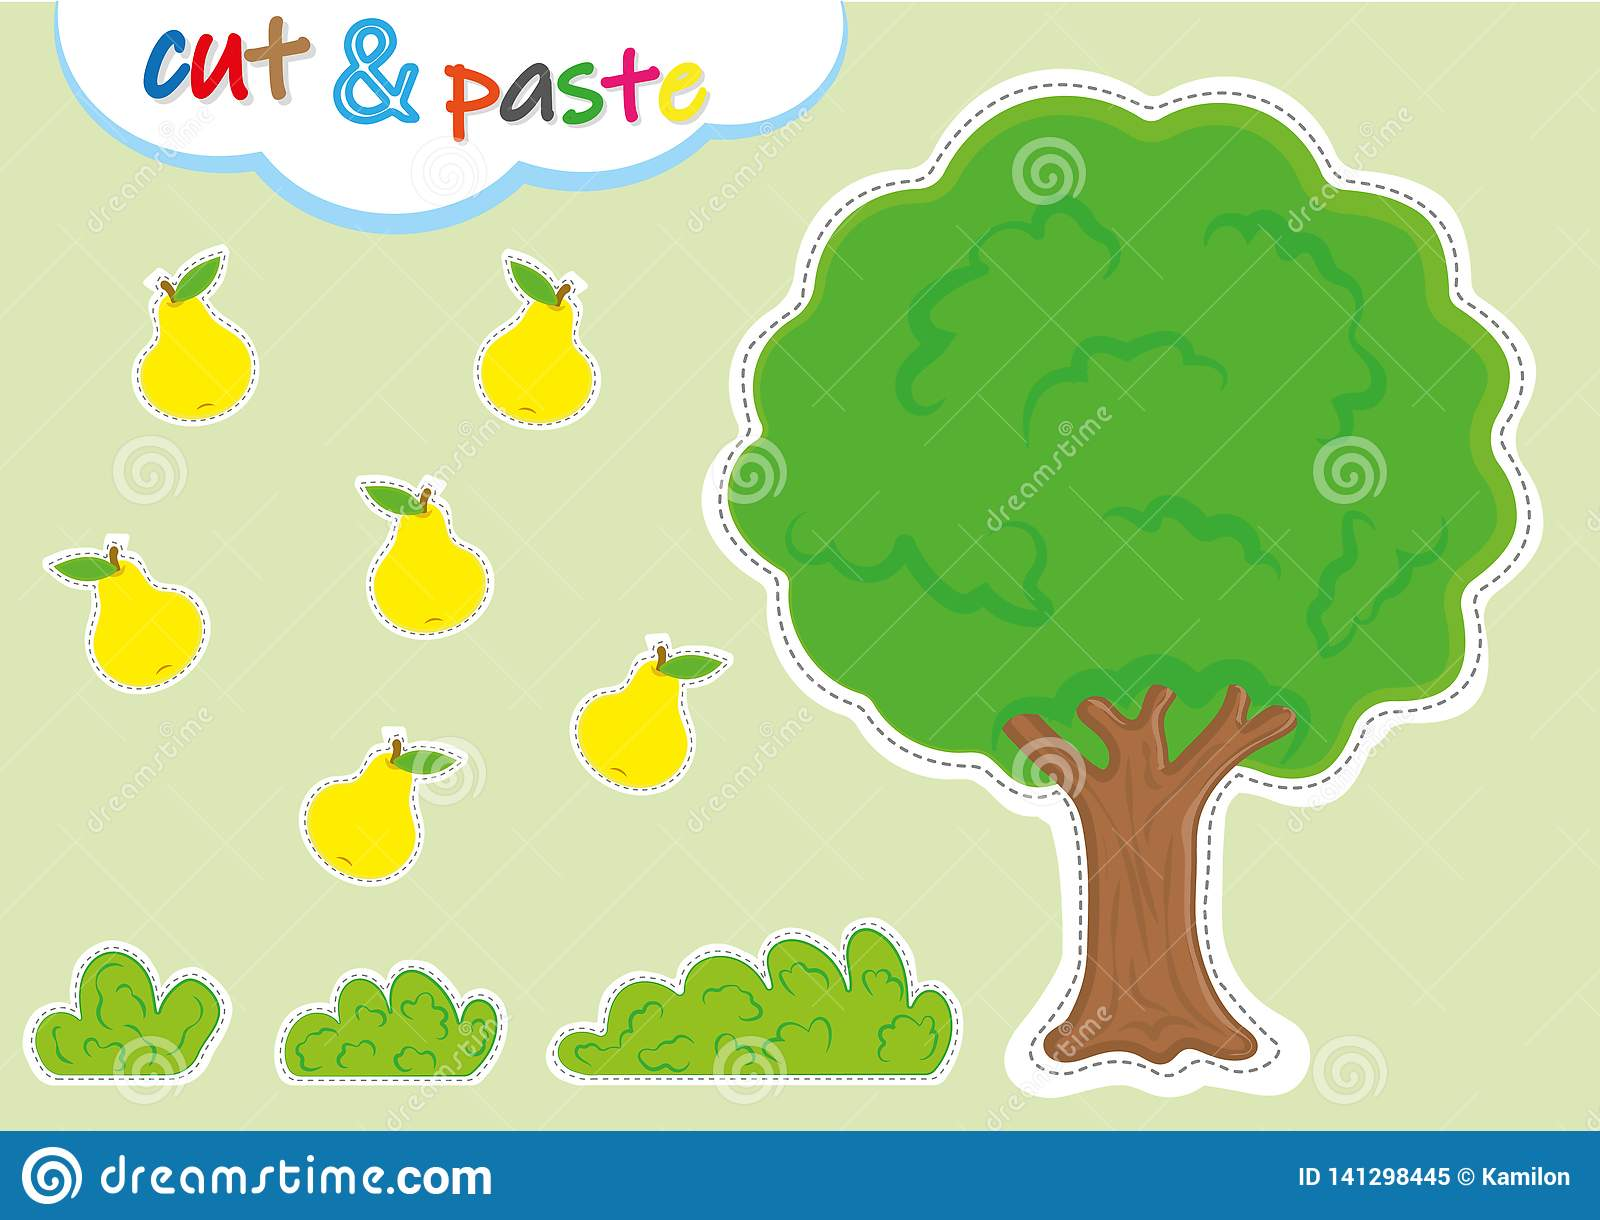 Cut And Paste Activities For Kindergarten Preschool Cutting And Pasting Worksheets Stock